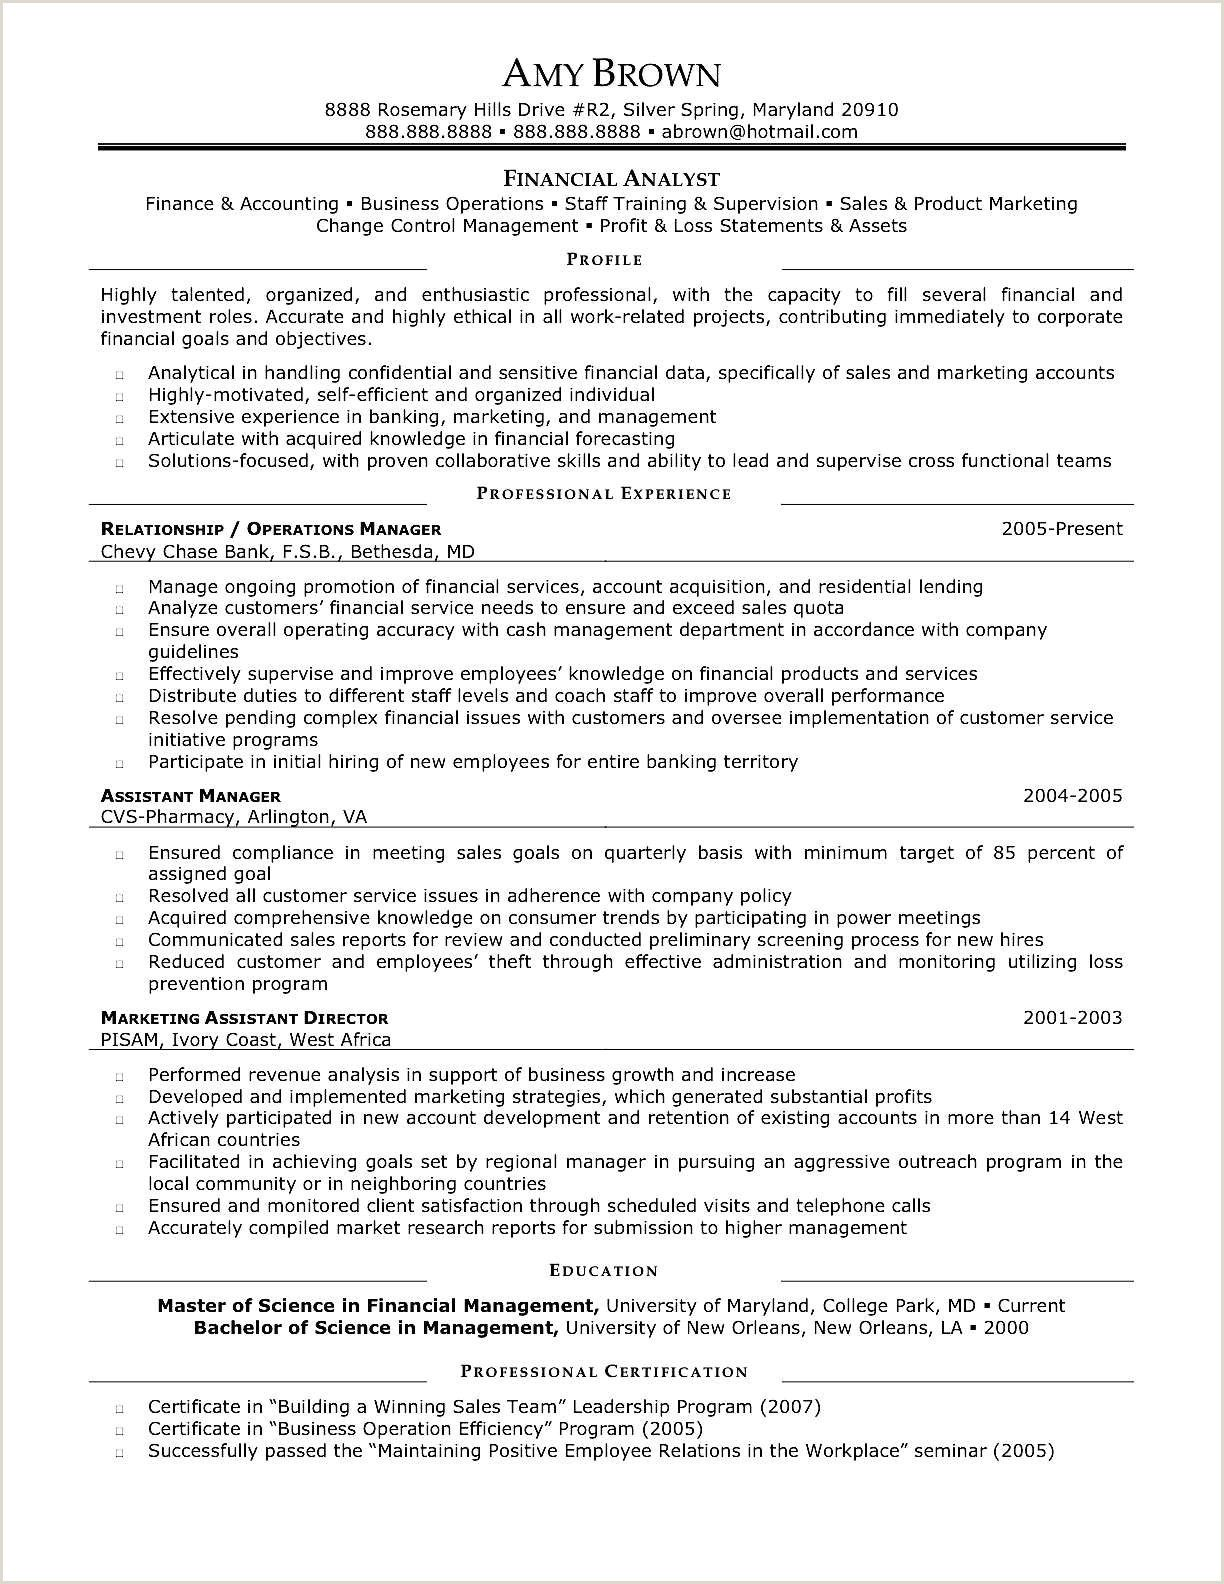 Click Here To Download This Financial Analyst Resume Template Http Www Resumetemplates101 Com F Job Resume Samples Financial Analyst Business Analyst Resume